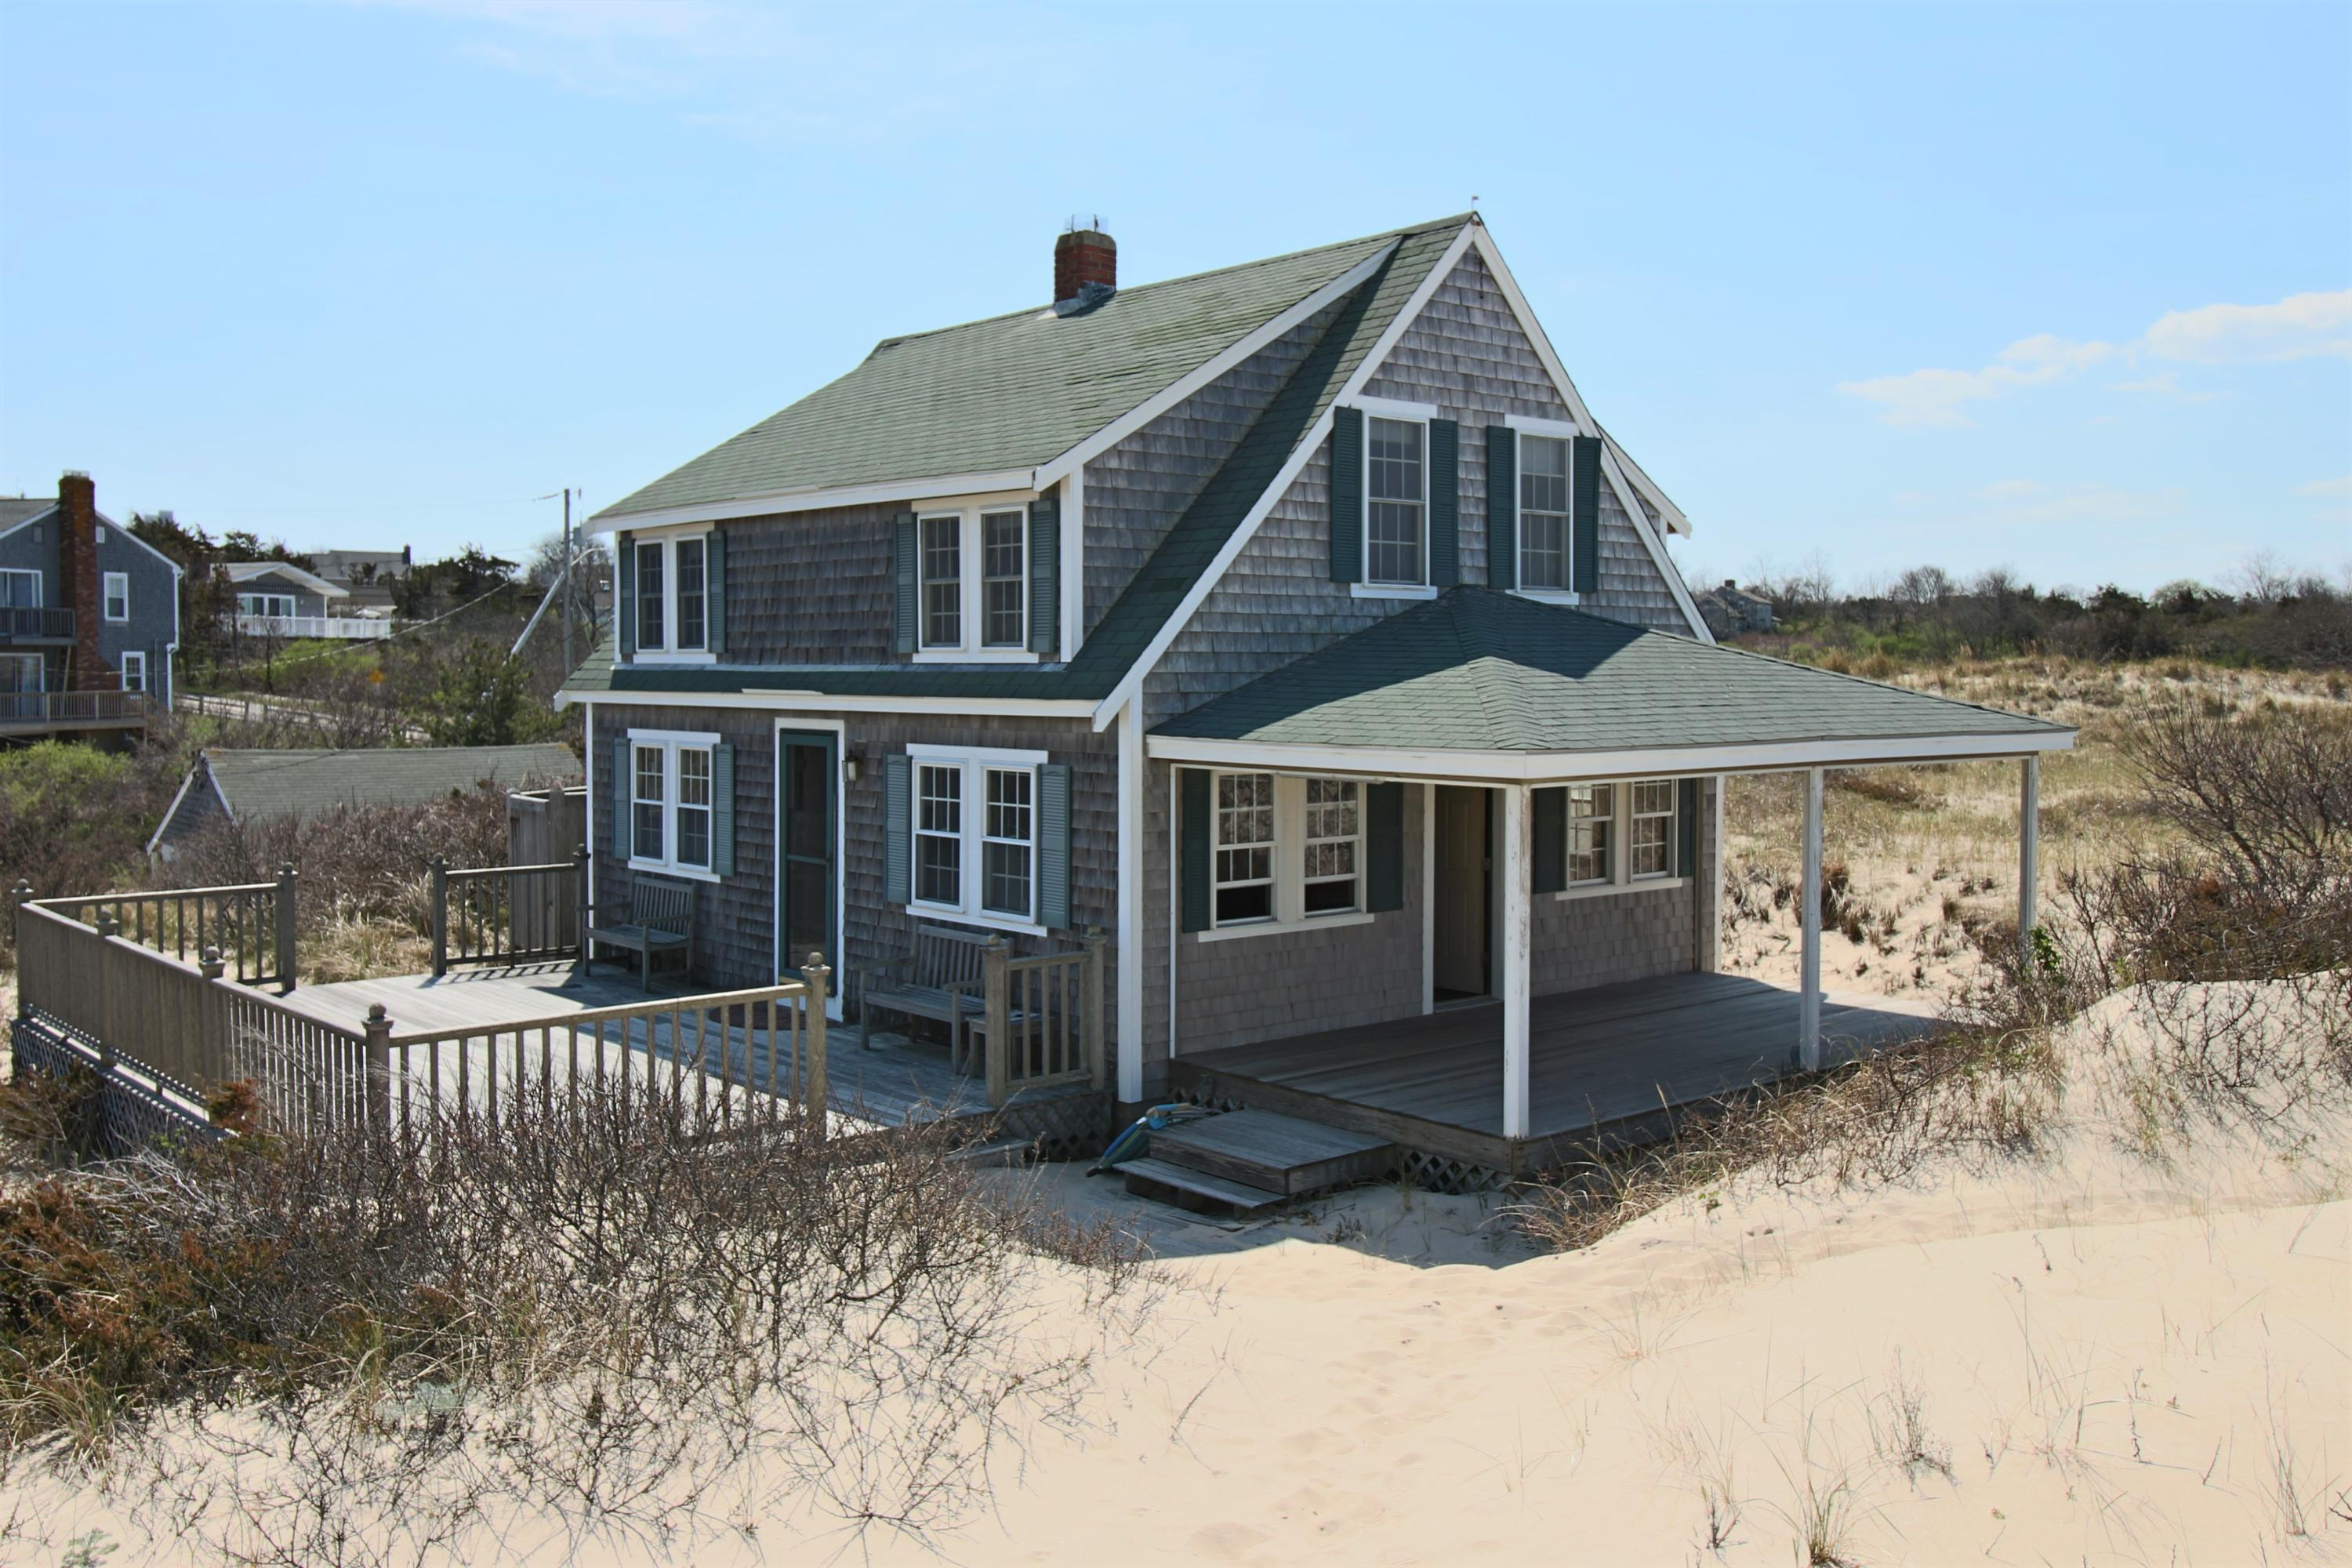 click to view more details 42 Howes Street, Dennis, MA 02638